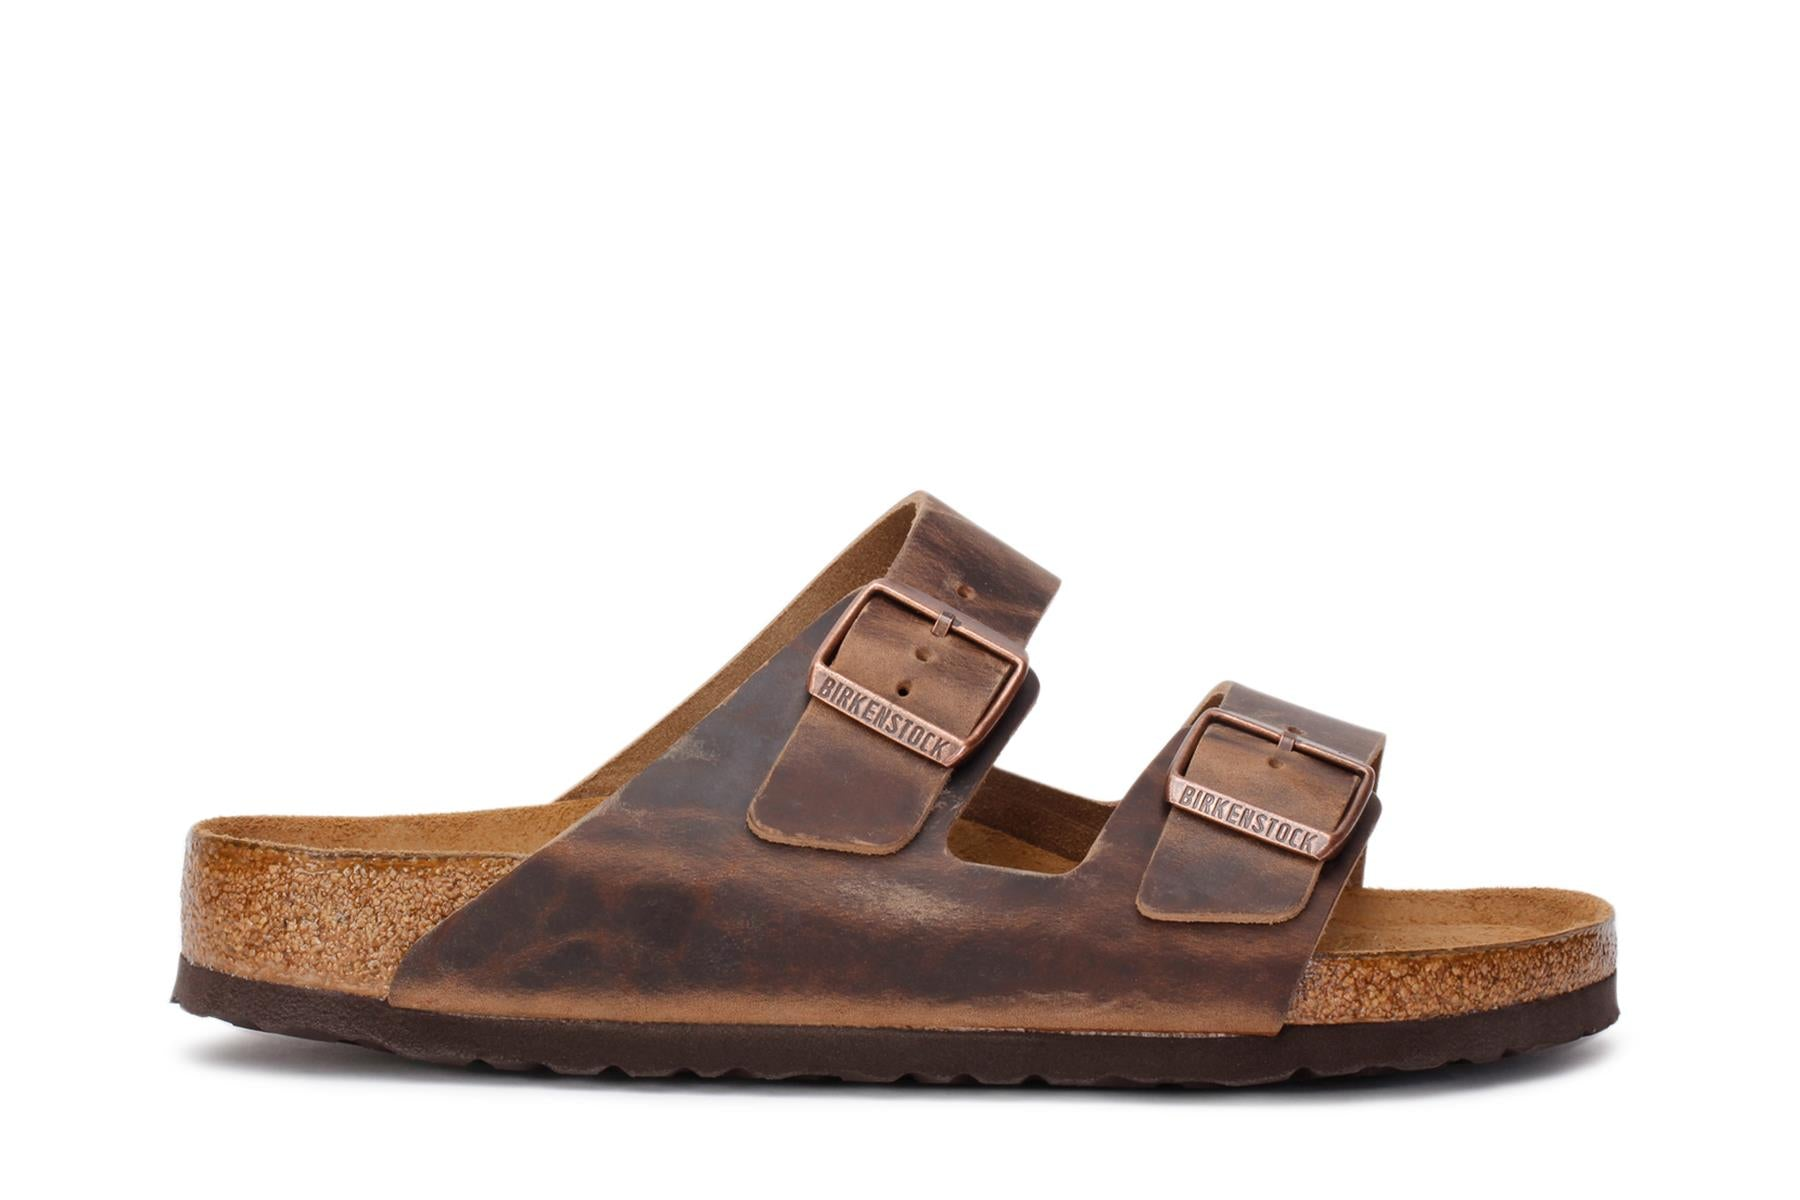 birkenstock-mens-slide-sandals-arizona-bs-soft-footbed-tobacco-brown-oiled-nubuck-552811-main